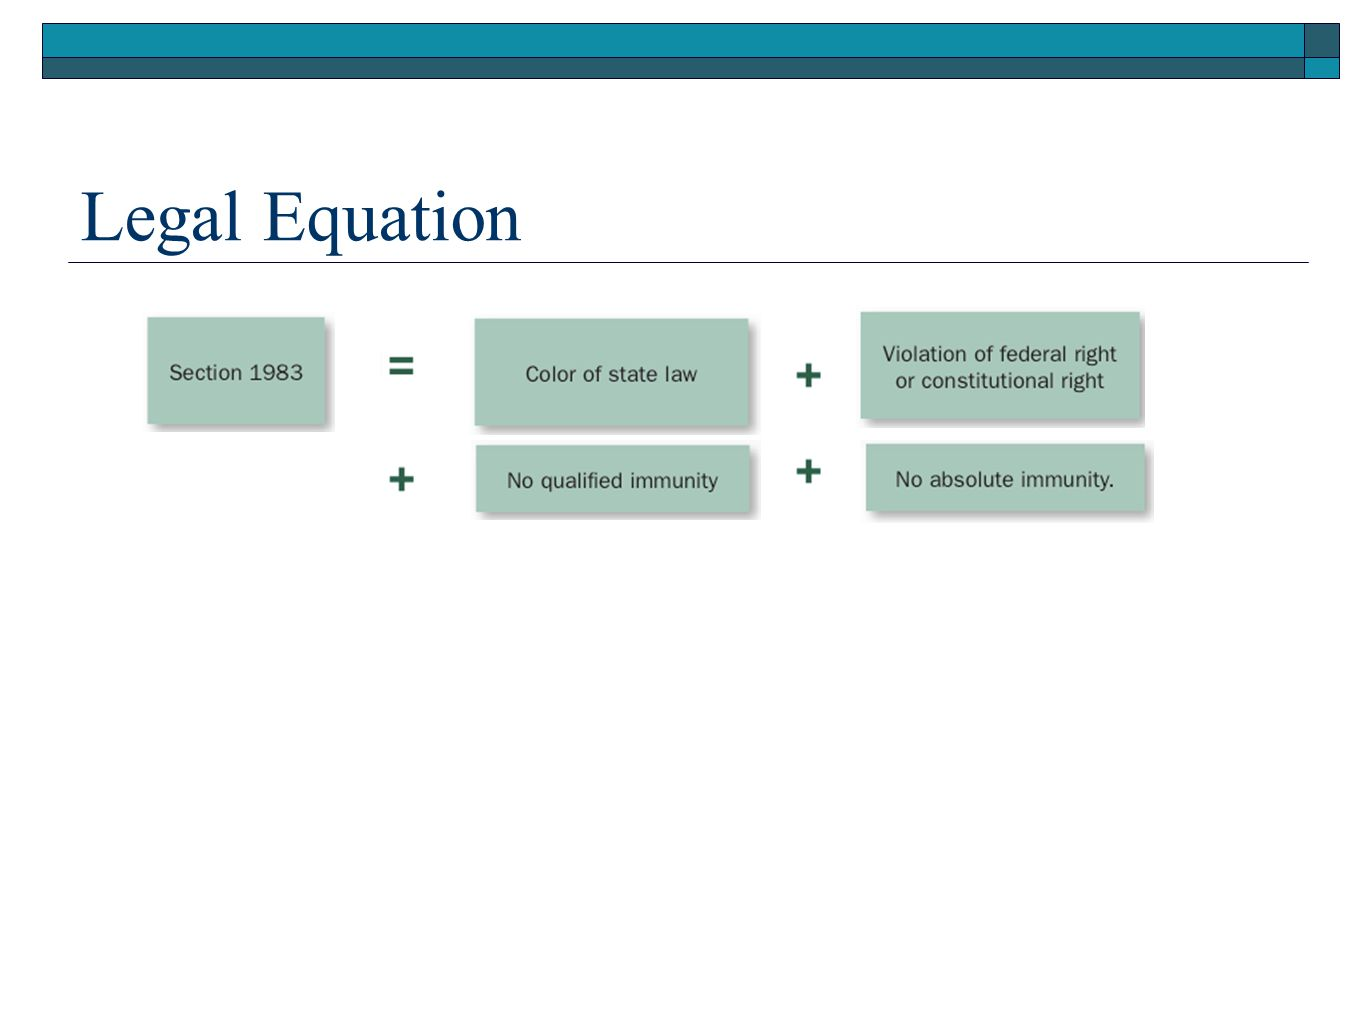 Legal Equation